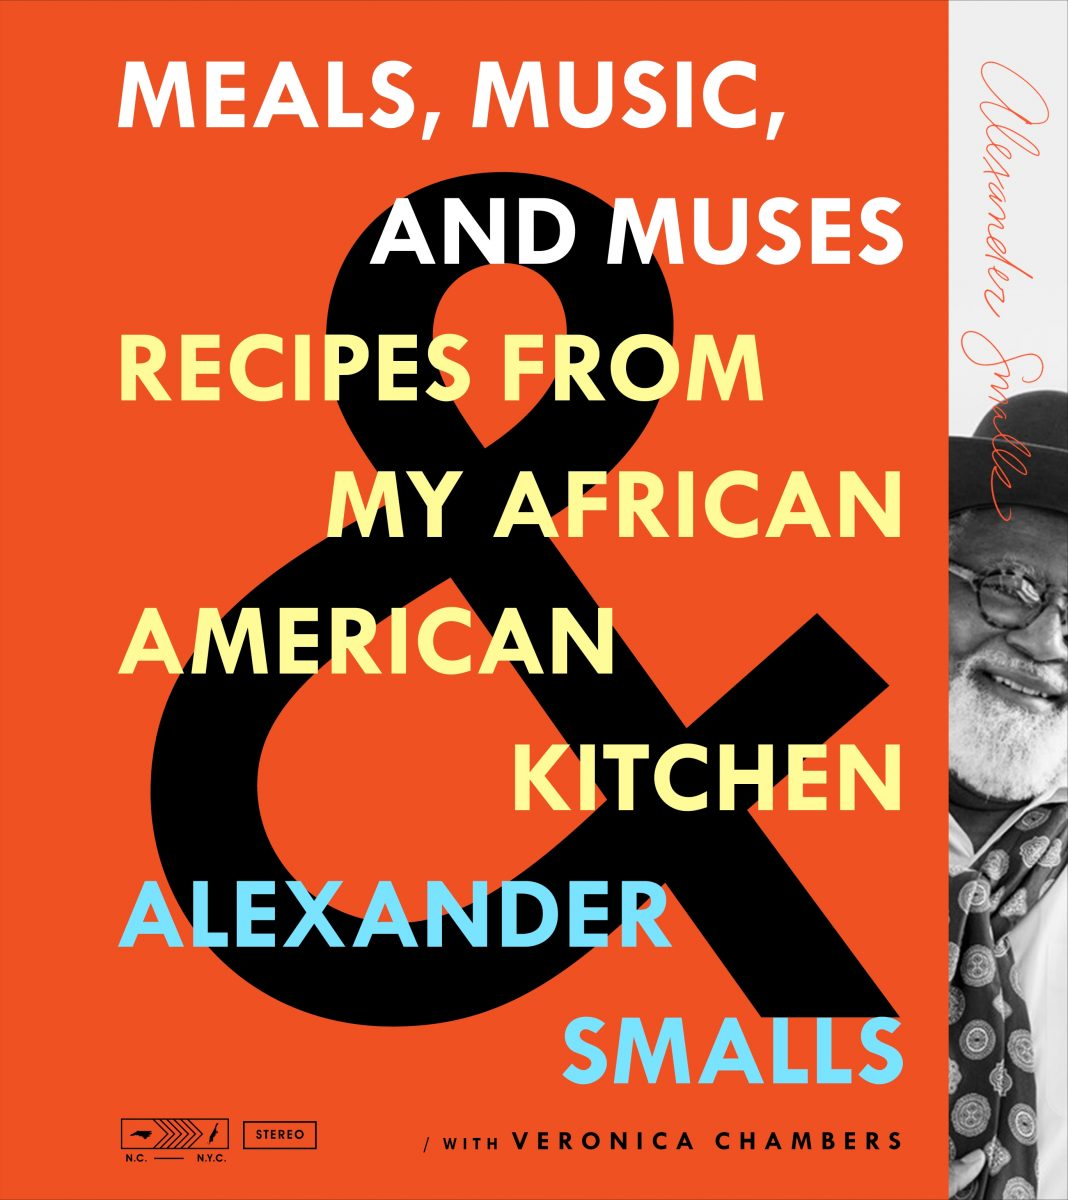 Alexander Smalls Lives Life with Purpose Through Food and Music